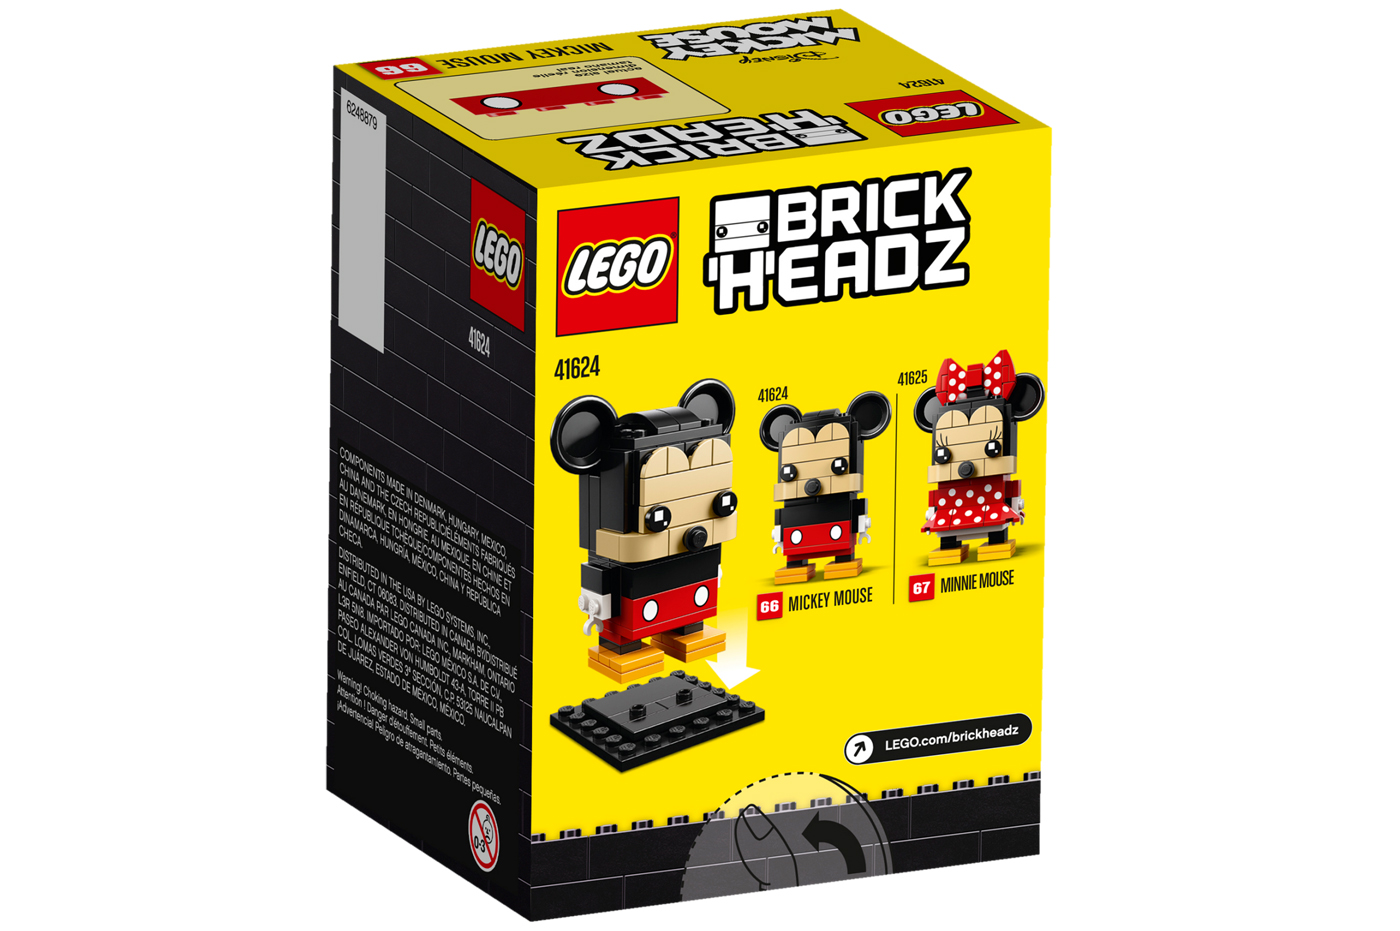 112 19 Brick Show The Lego News Archives Page Set Of IWDH2E9